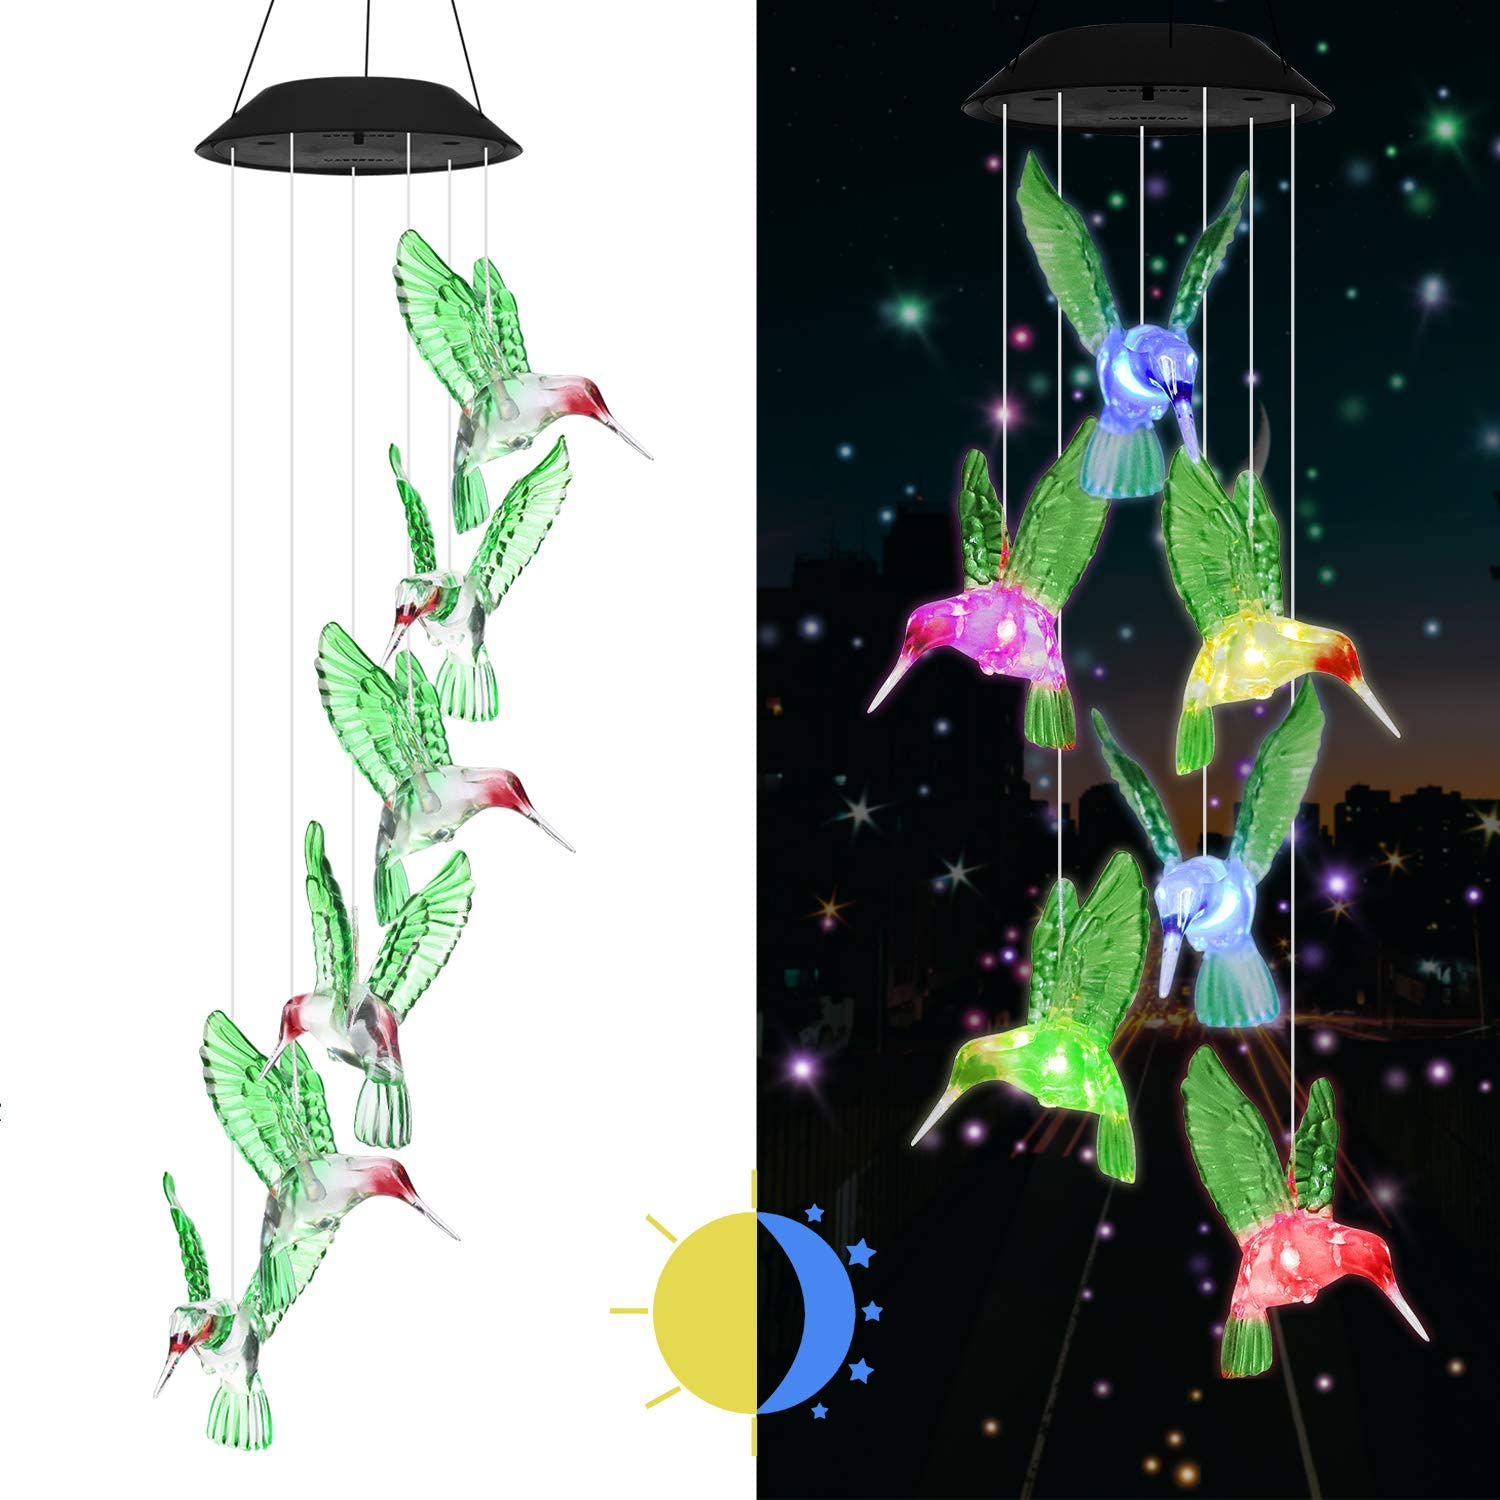 eQFeast Solar Hummingbird Wind Chimes, Gifts for Mom, Color-Changing LED Solar Mobile Wind Chime, Waterproof Six Hummingbird Wind Chimes for Home Party Night Garden Decoration, Valentines Gift : Garden & Outdoor